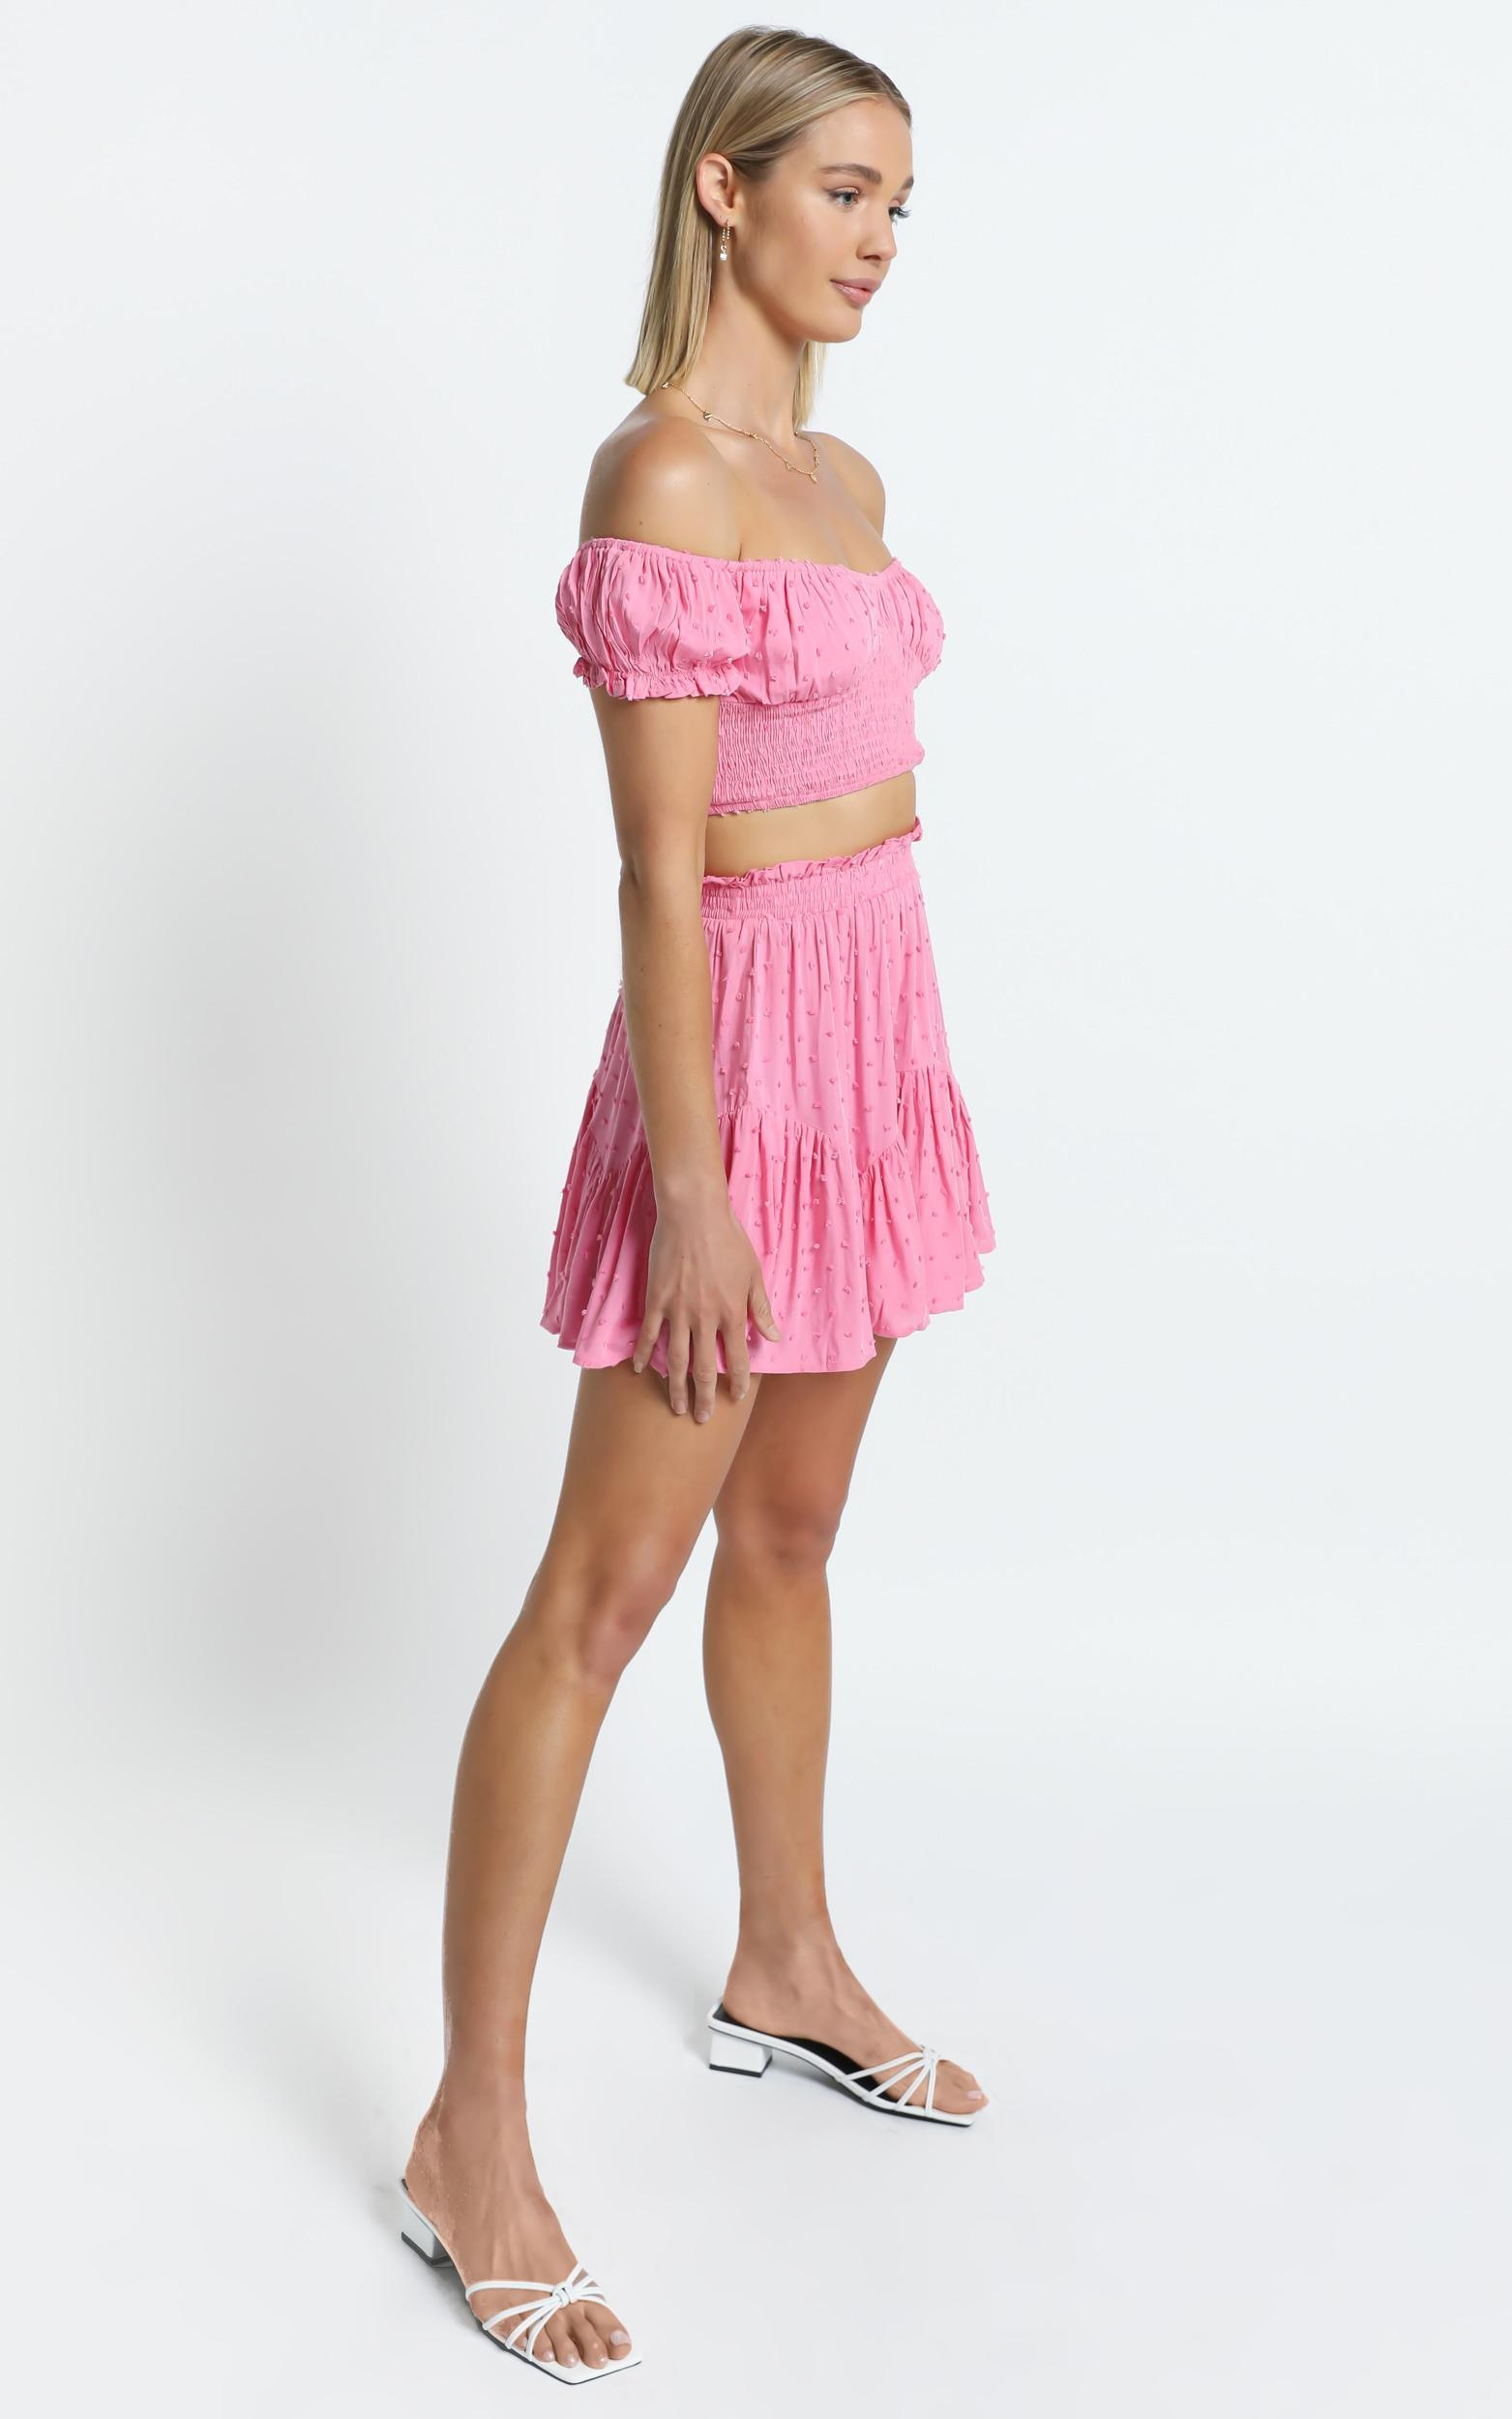 Fredi Two Piece Set in Pink - 6 (XS), Pink, hi-res image number null